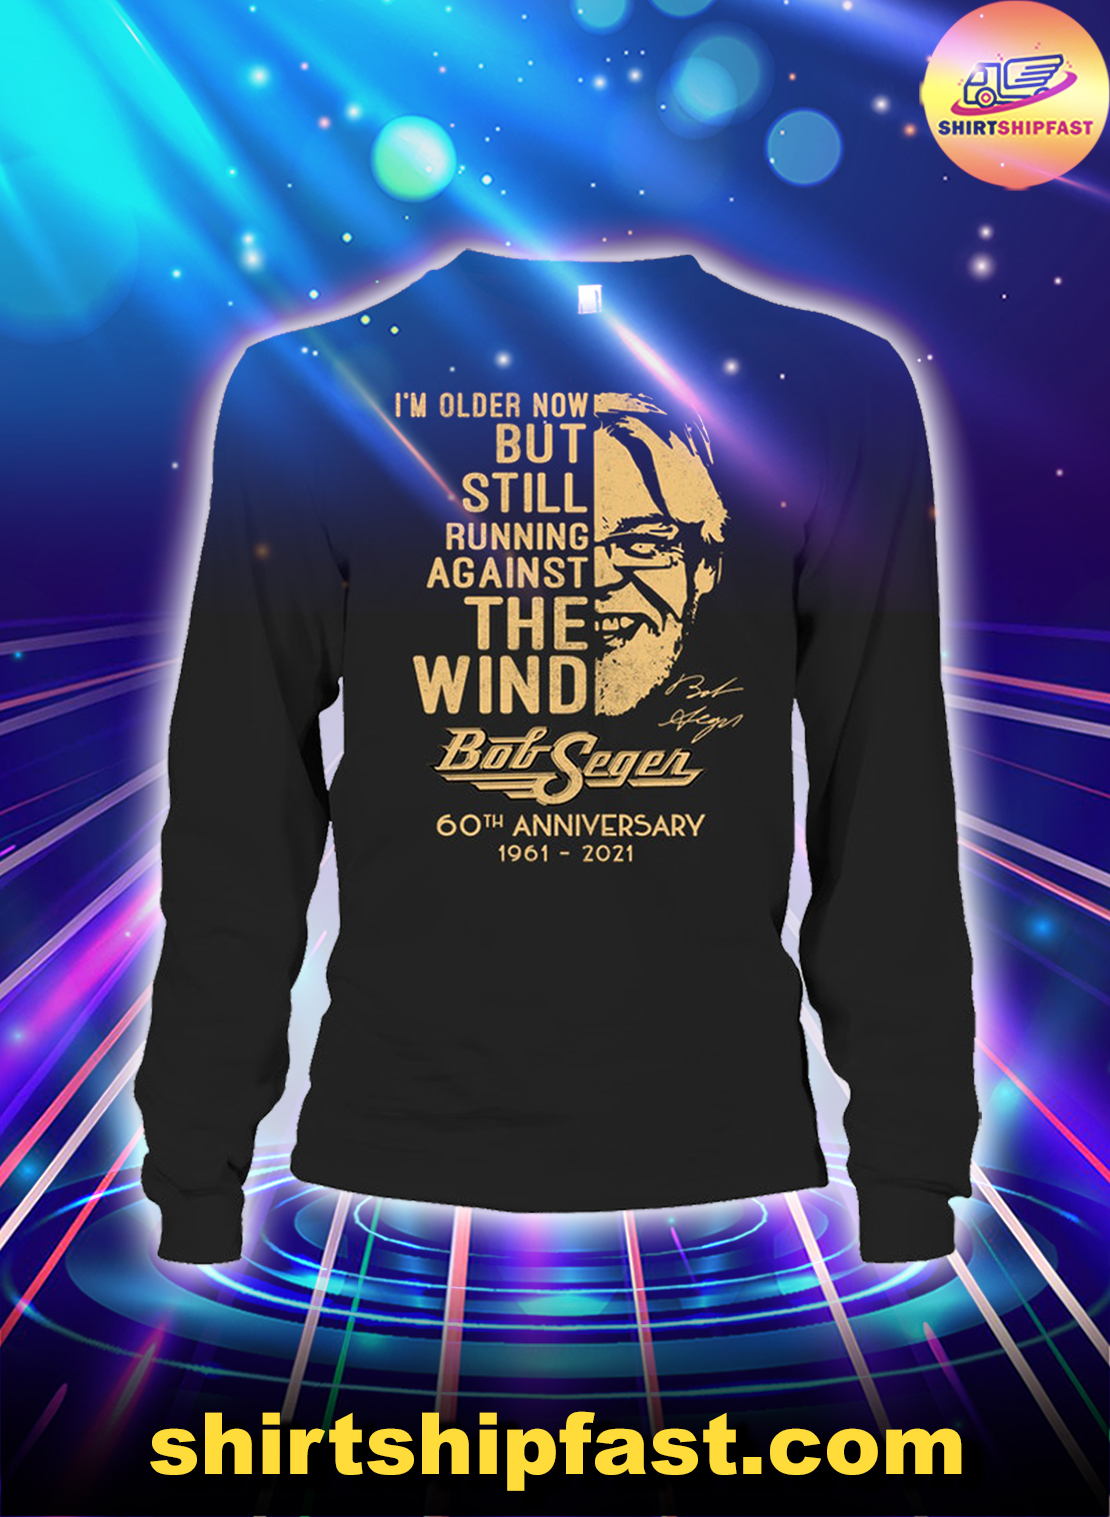 I'm older now but still running against the wind Bob Seger 60th anniversary long sleeve tee